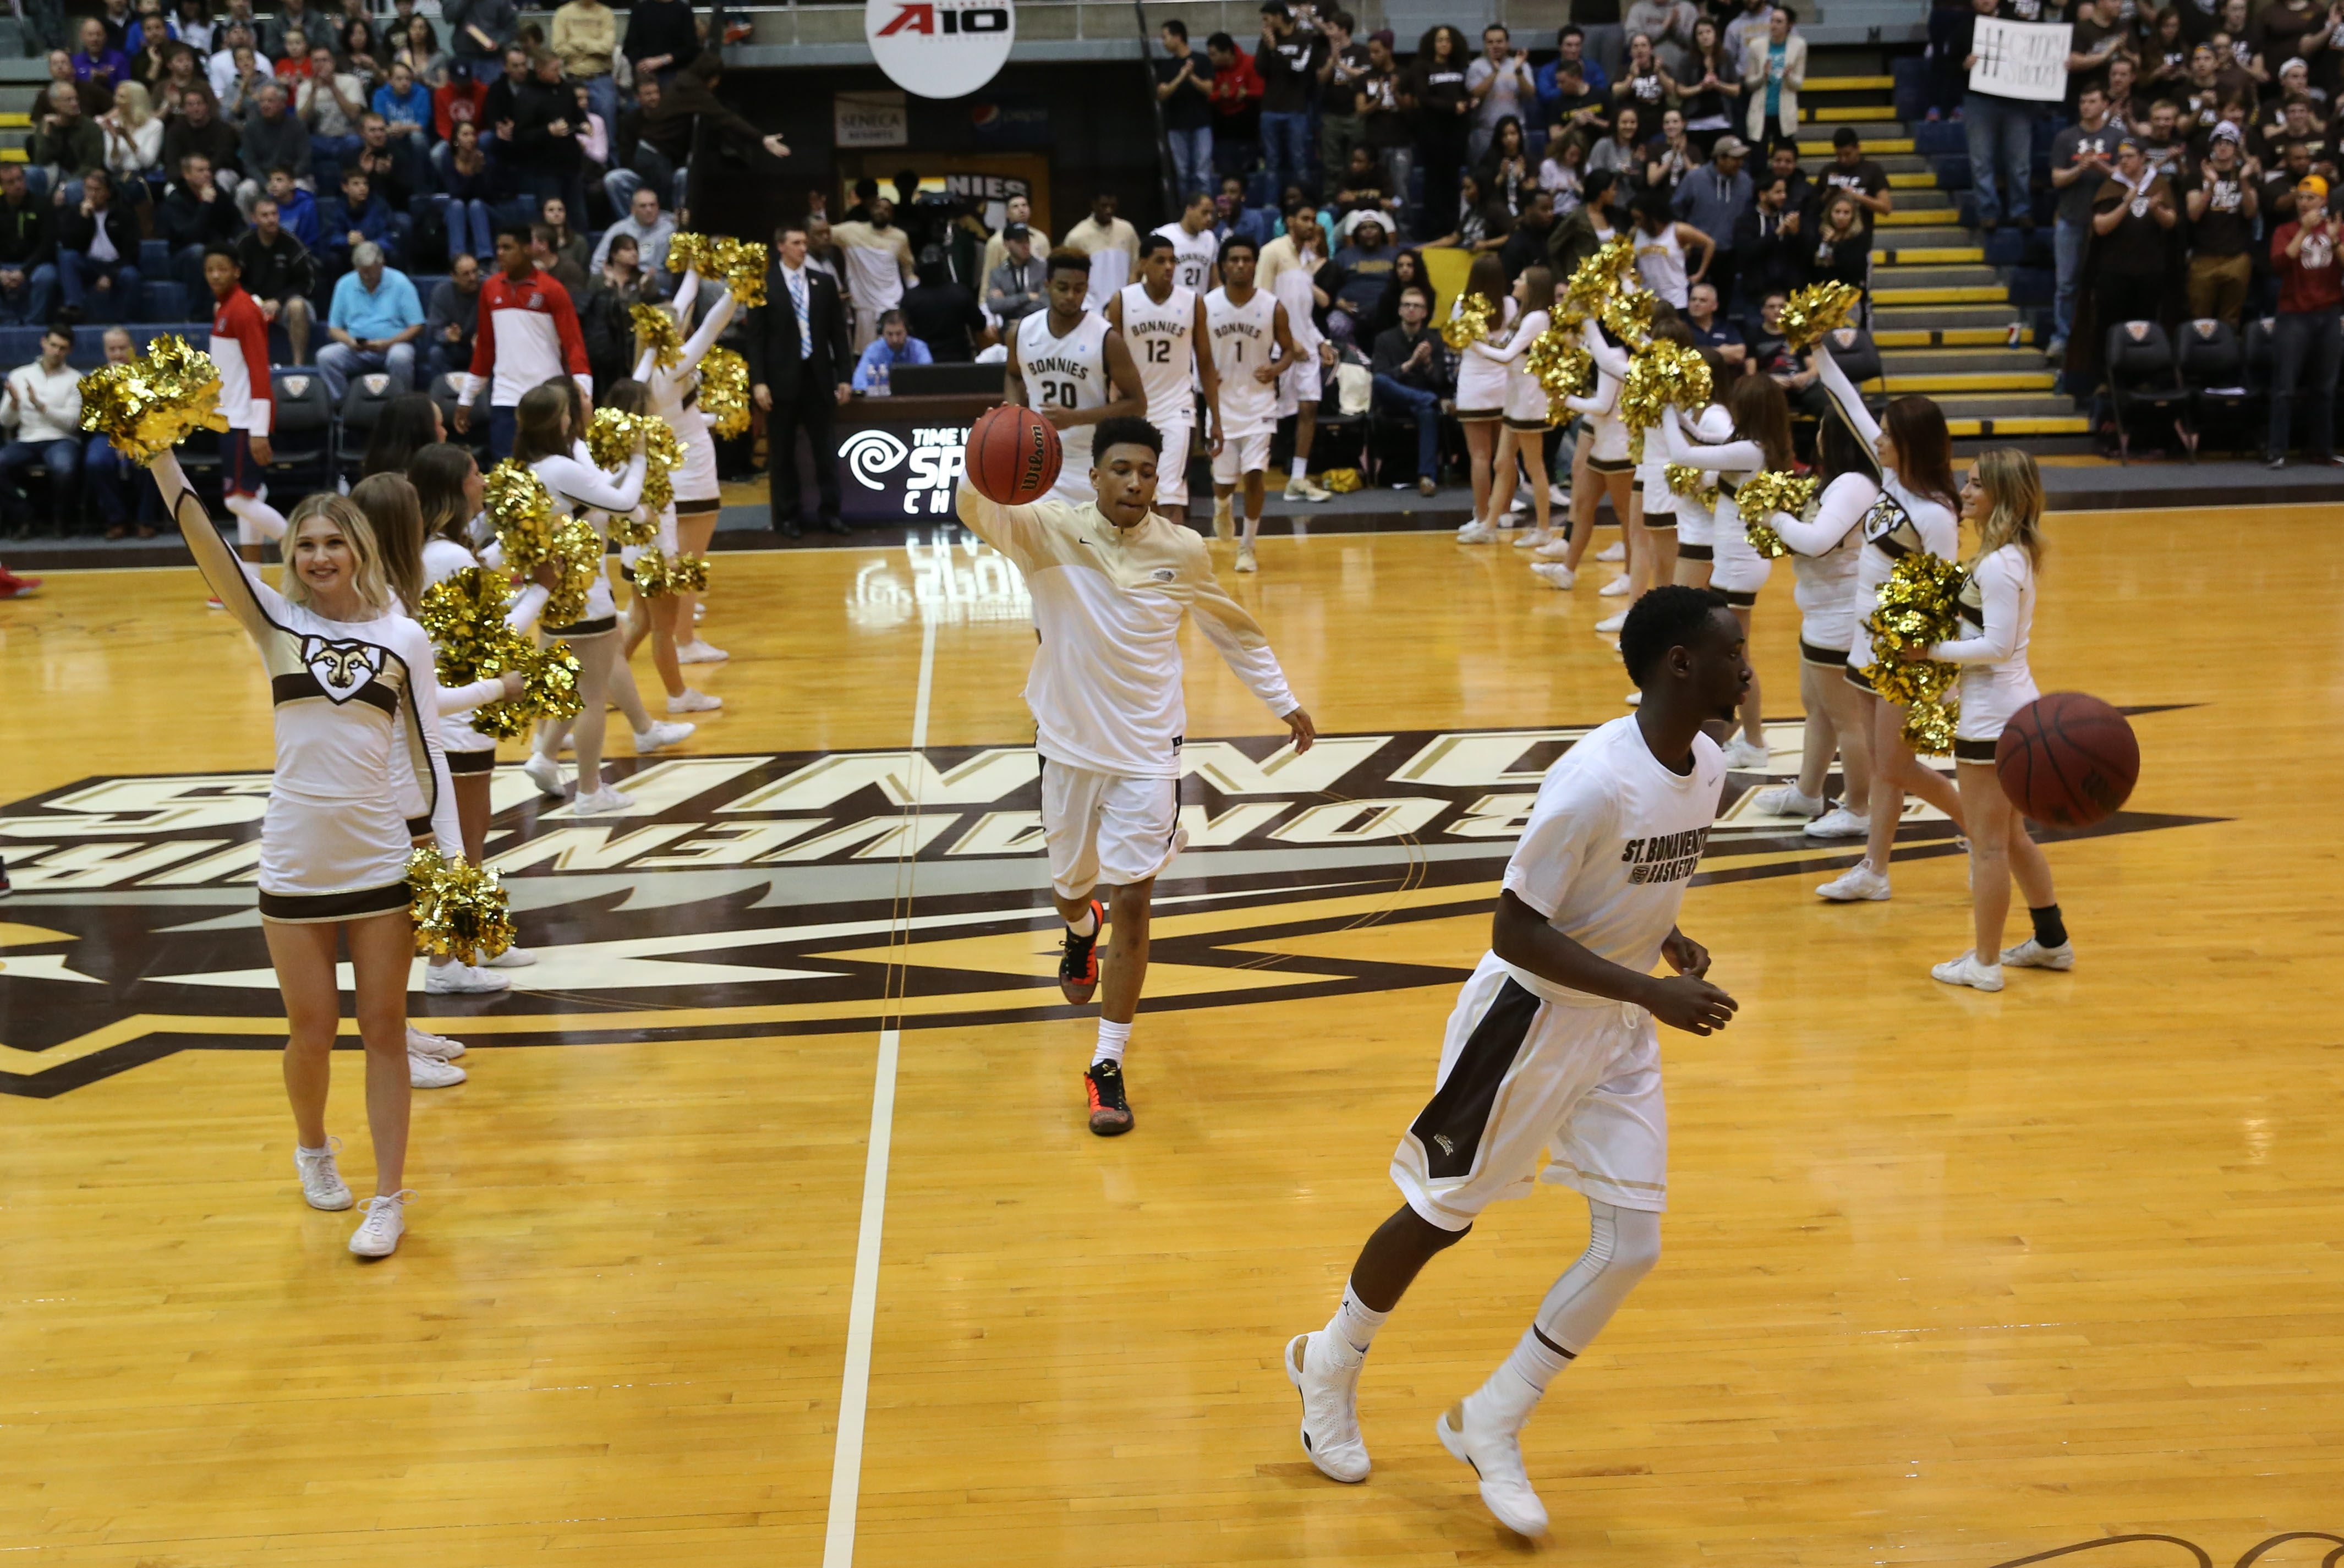 A St. Bonaventure Bonnies basketball game can be an exciting experience whether or not you're a basketball fan. The energy inside the Reilly Center is infectious. (Sharon Cantillon/Buffalo News)